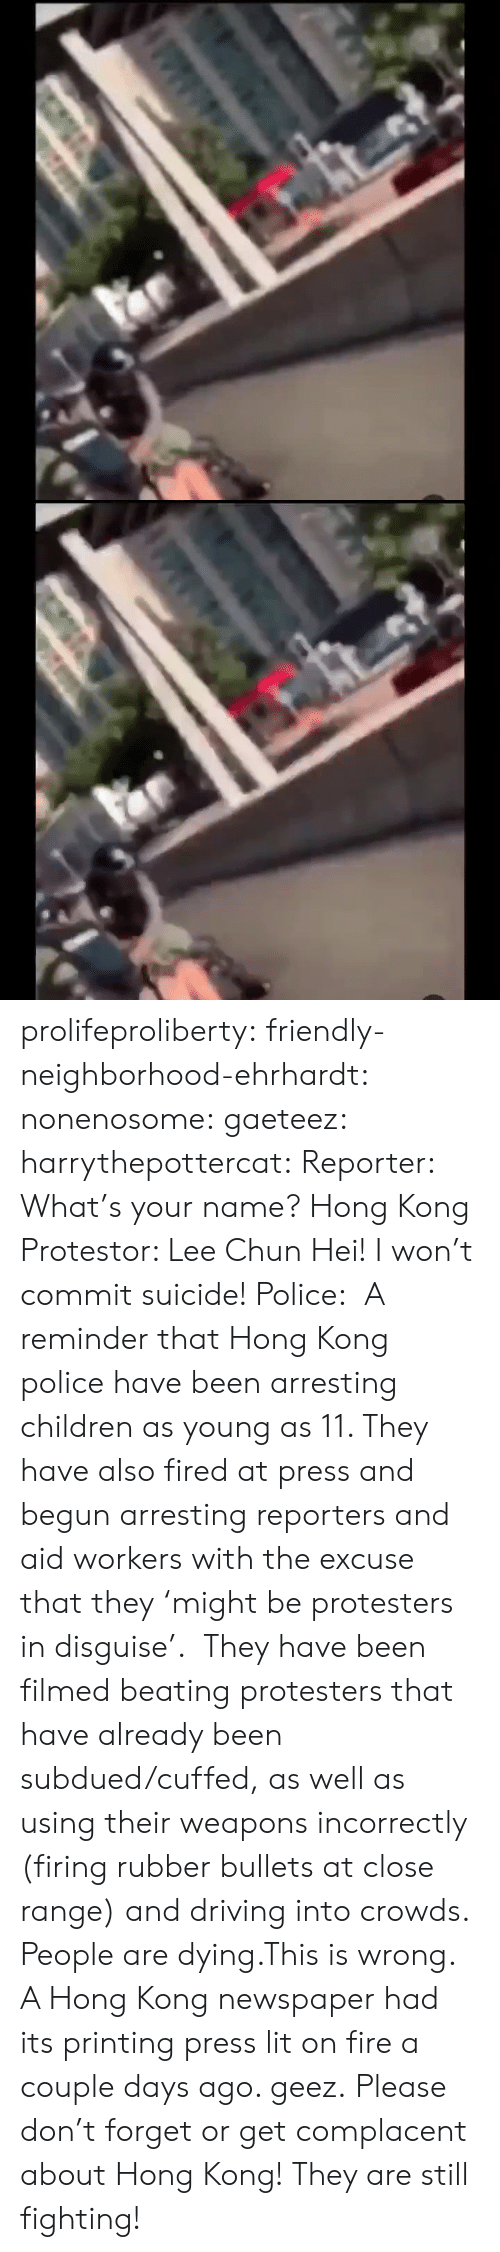 reporters: के.  ॥ल prolifeproliberty:  friendly-neighborhood-ehrhardt:  nonenosome:  gaeteez:   harrythepottercat:  Reporter: What's your name? Hong Kong Protestor: Lee Chun Hei! I won't commit suicide! Police:    A reminder that Hong Kong police have been arresting children as young as 11. They have also fired at press and begun arresting reporters and aid workers with the excuse that they 'might be protesters in disguise'.  They have been filmed beating protesters that have already been subdued/cuffed, as well as using their weapons incorrectly (firing rubber bullets at close range) and driving into crowds.  People are dying.This is wrong.    A Hong Kong newspaper had its printing press lit on fire a couple days ago.   geez.   Please don't forget or get complacent about Hong Kong! They are still fighting!